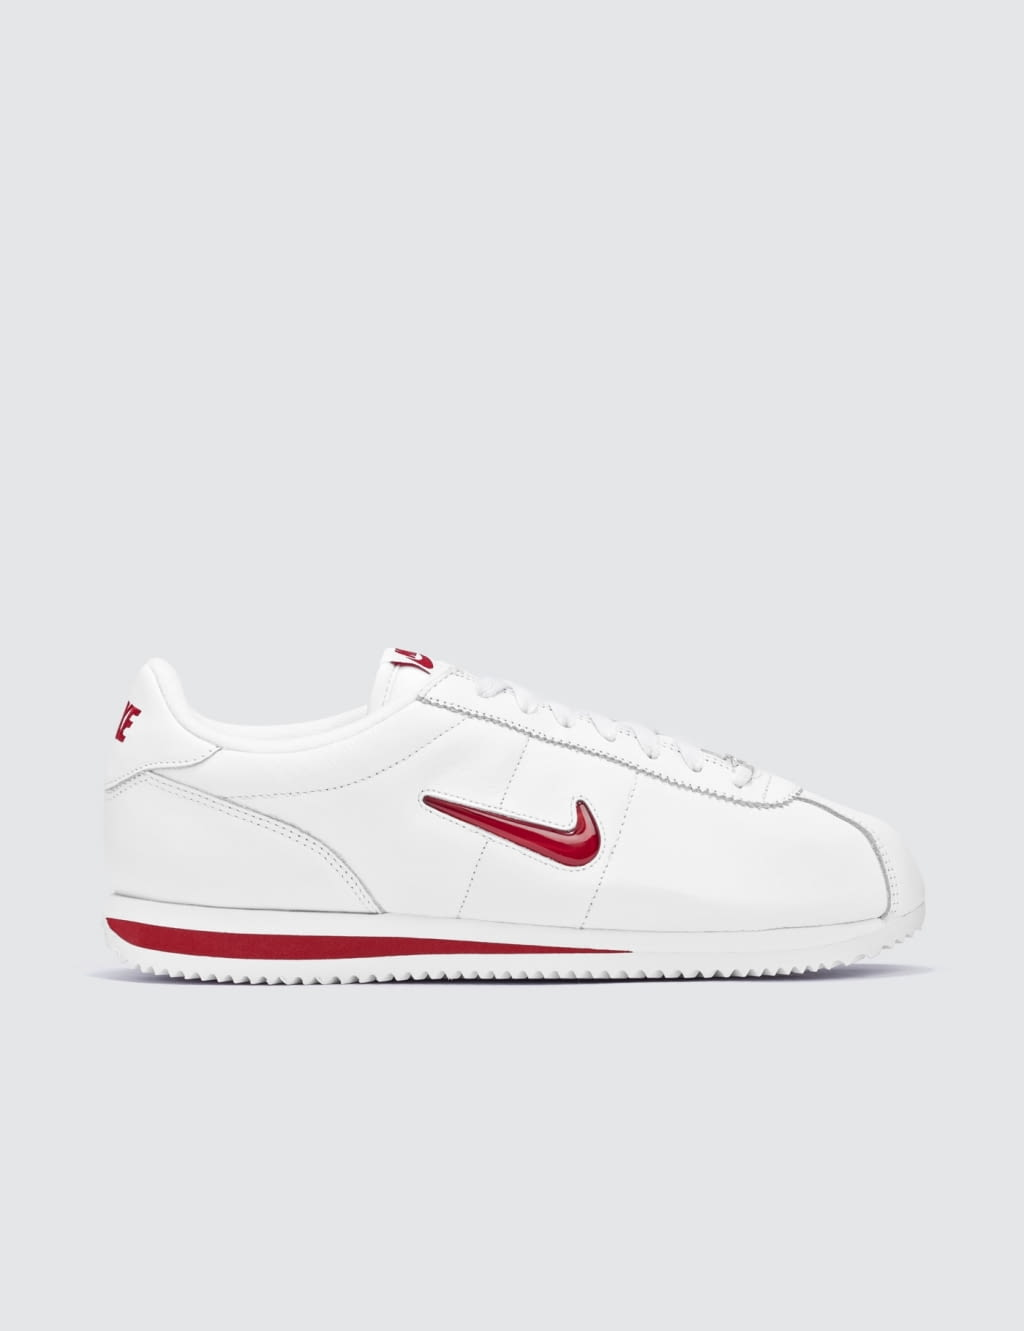 best service 4e857 5b017 discount code for nike cortez maroon jual b7406 52901